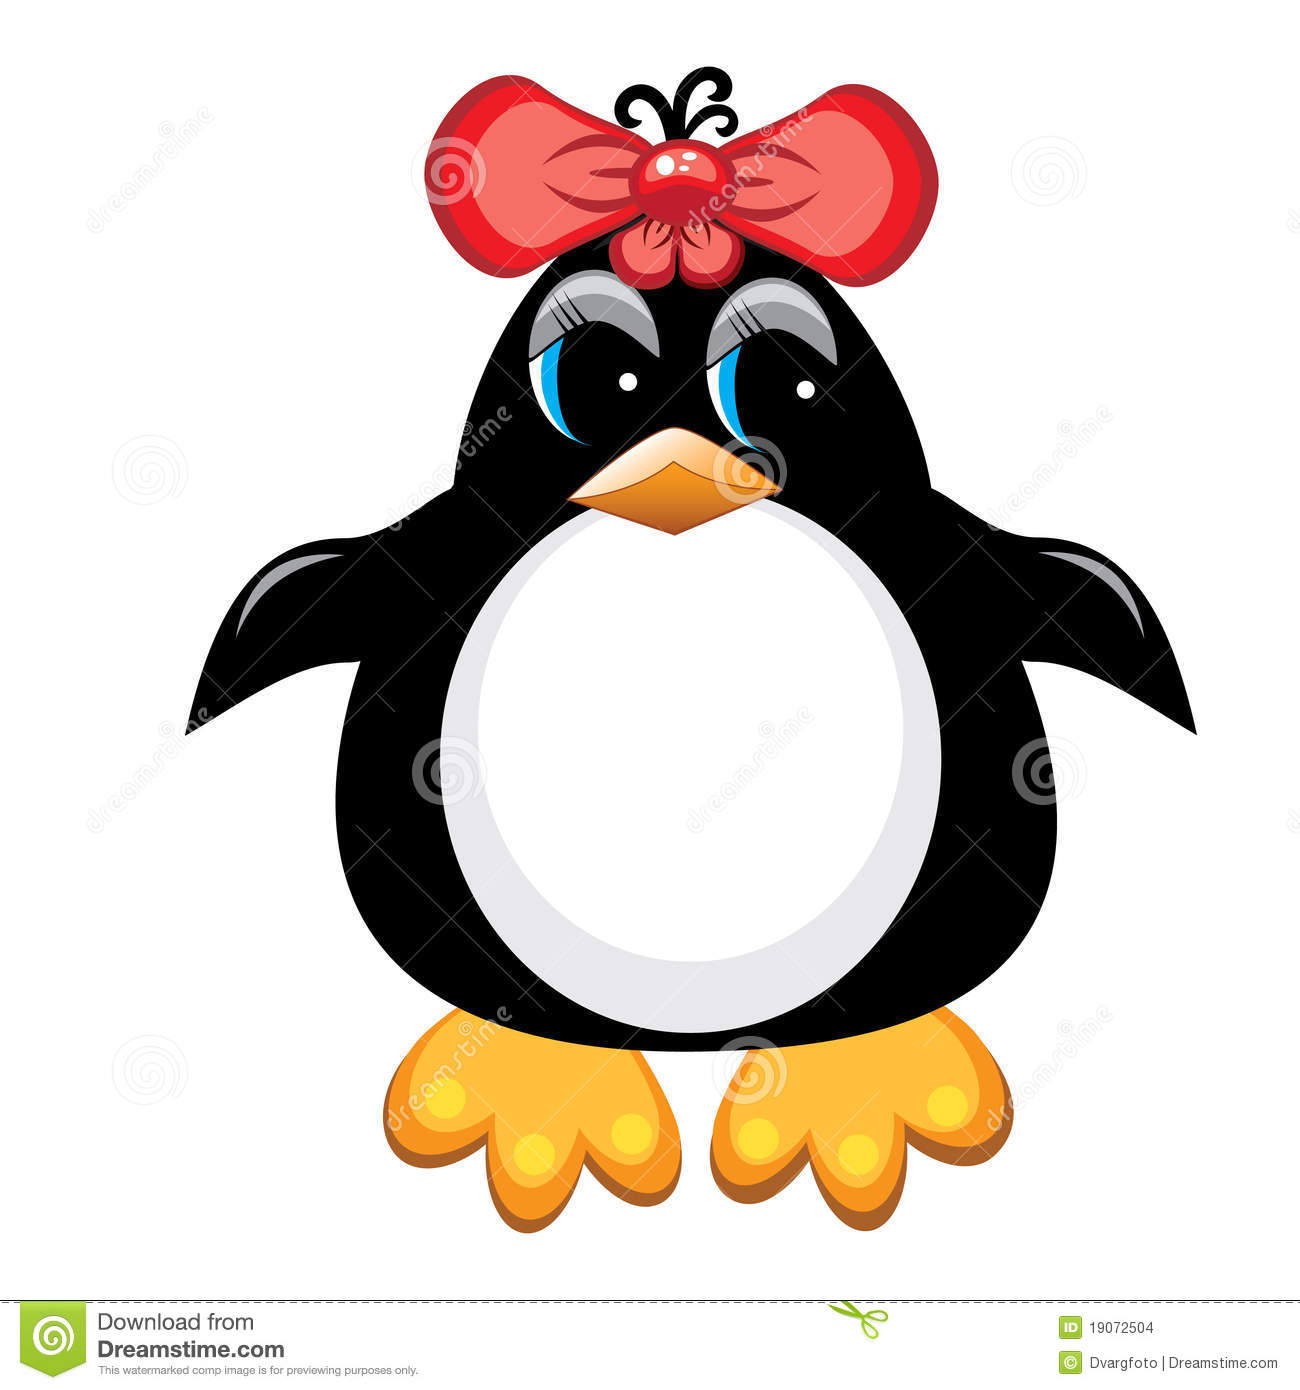 More similar stock images of ` Penguin cartoon bird. Girl. `